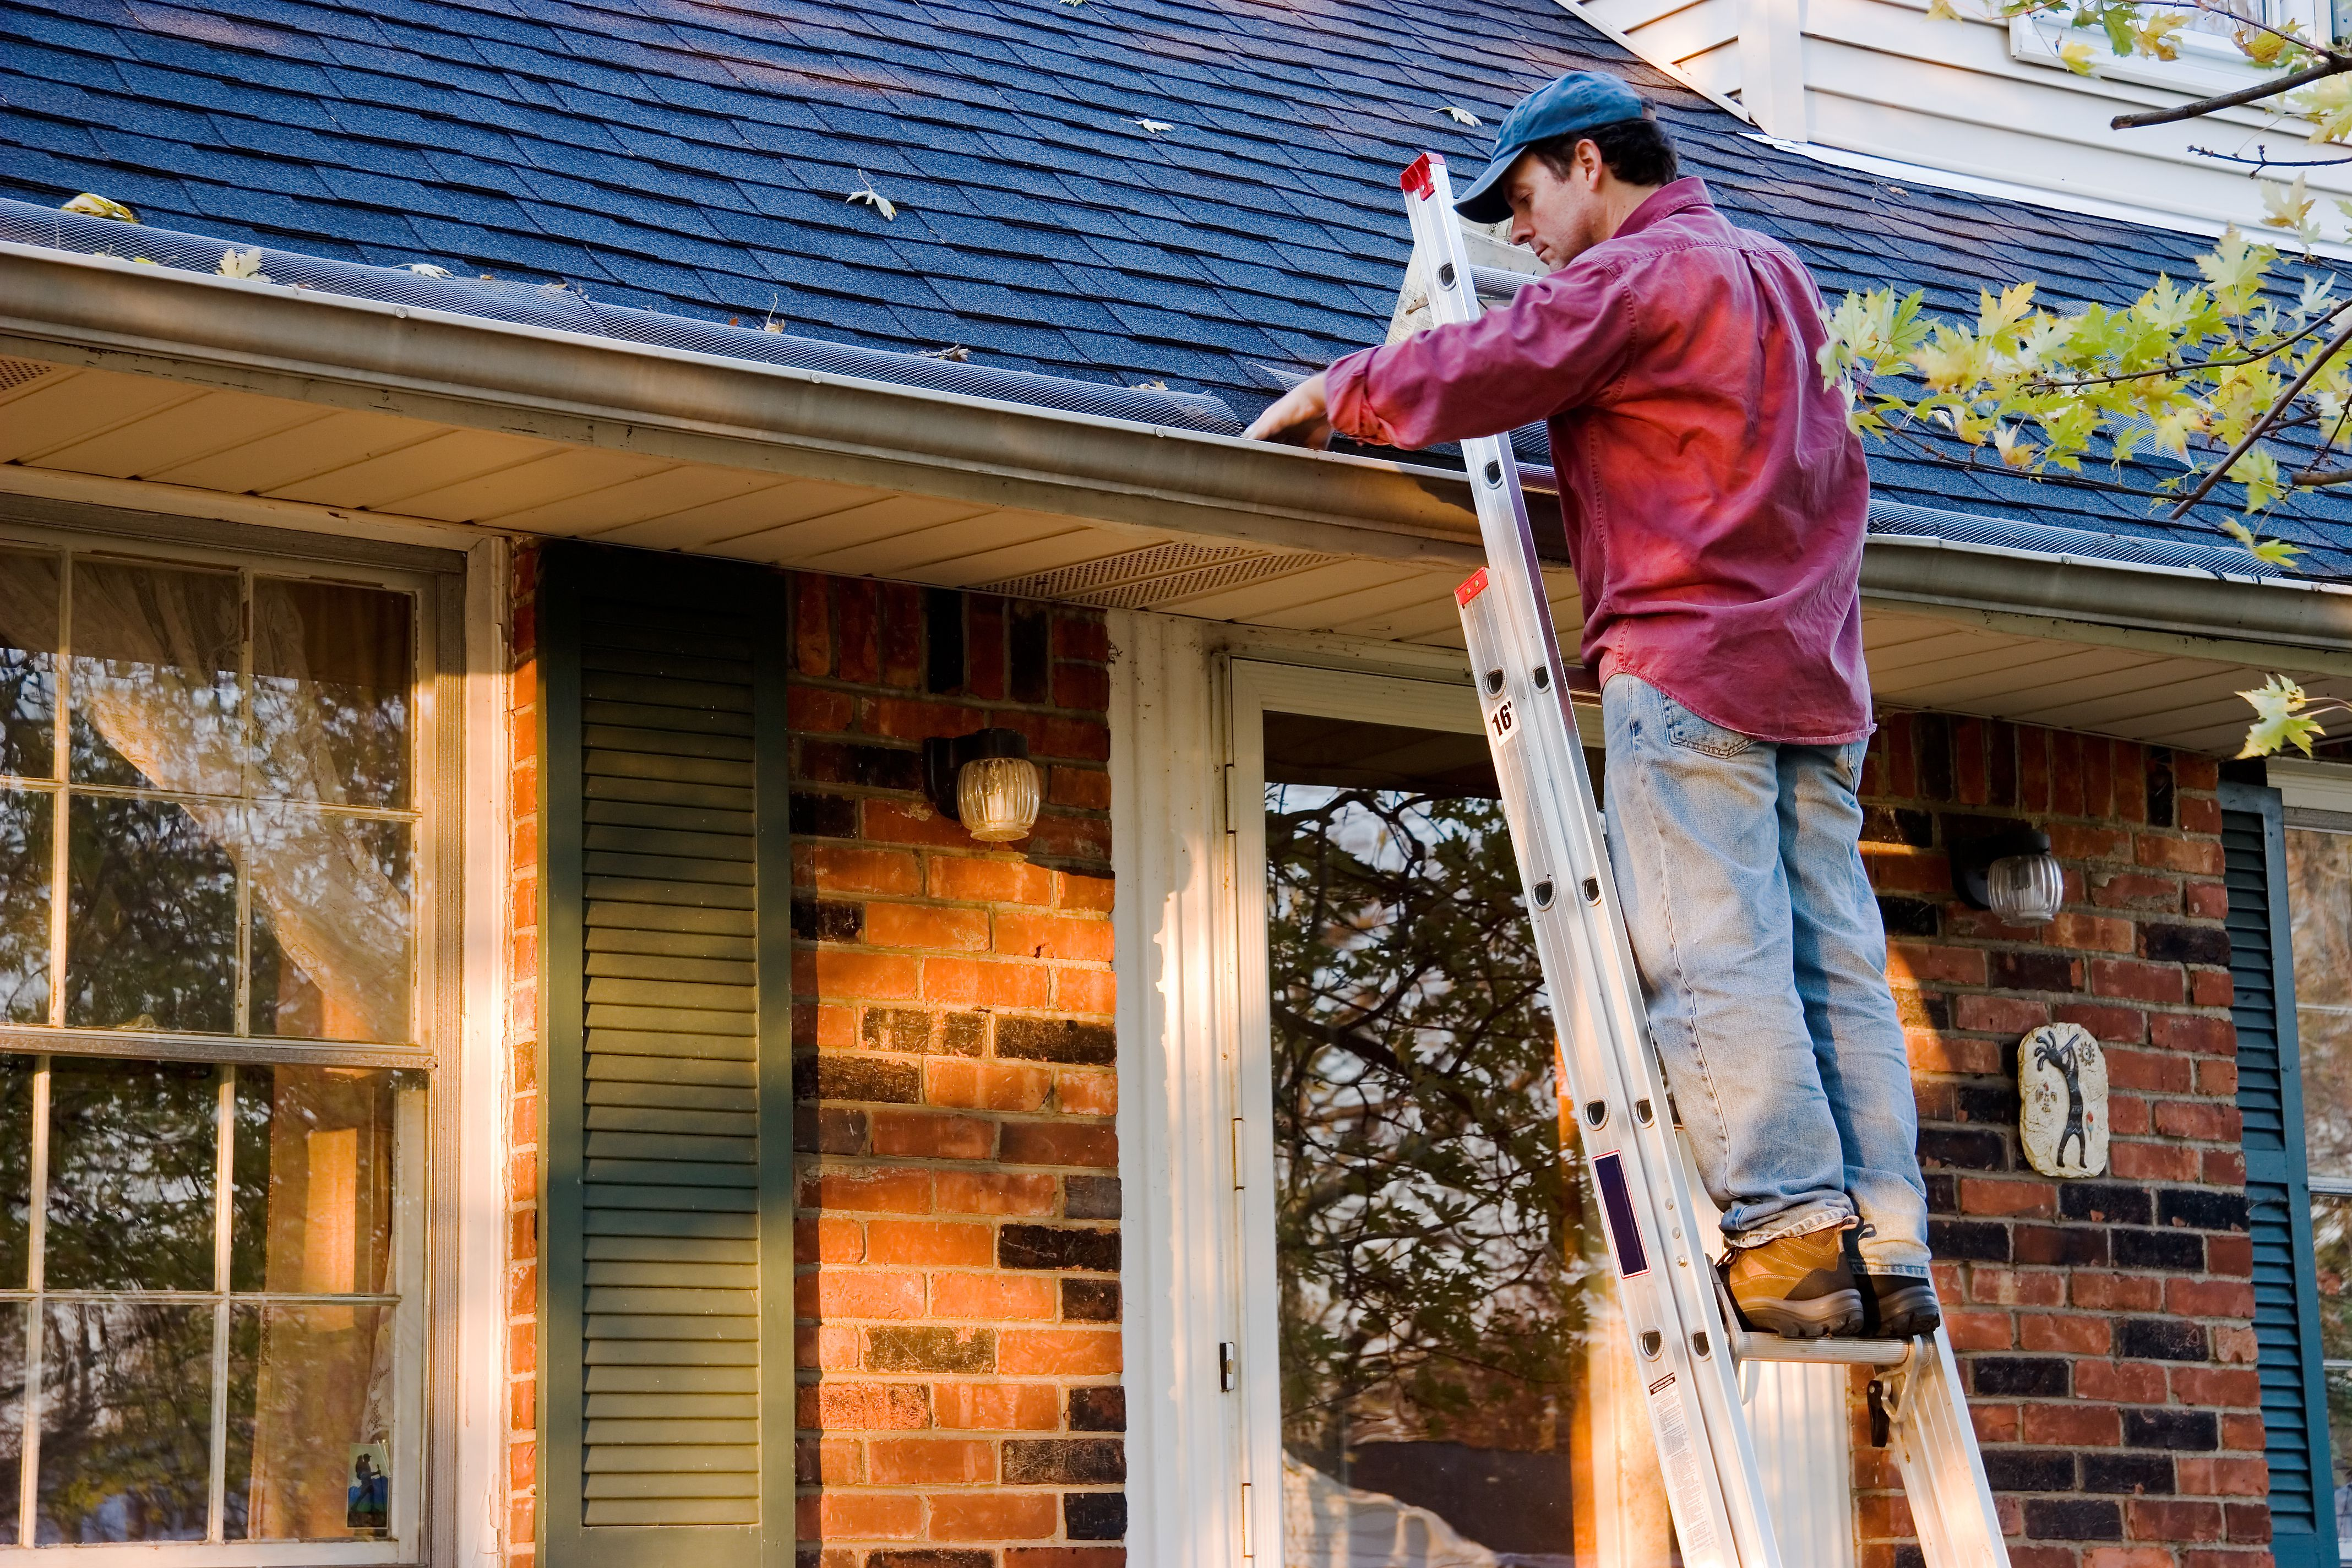 10 Tips For Tackling Rental Property Maintenance In 2020 Home Maintenance Cleaning Gutters How To Install Gutters